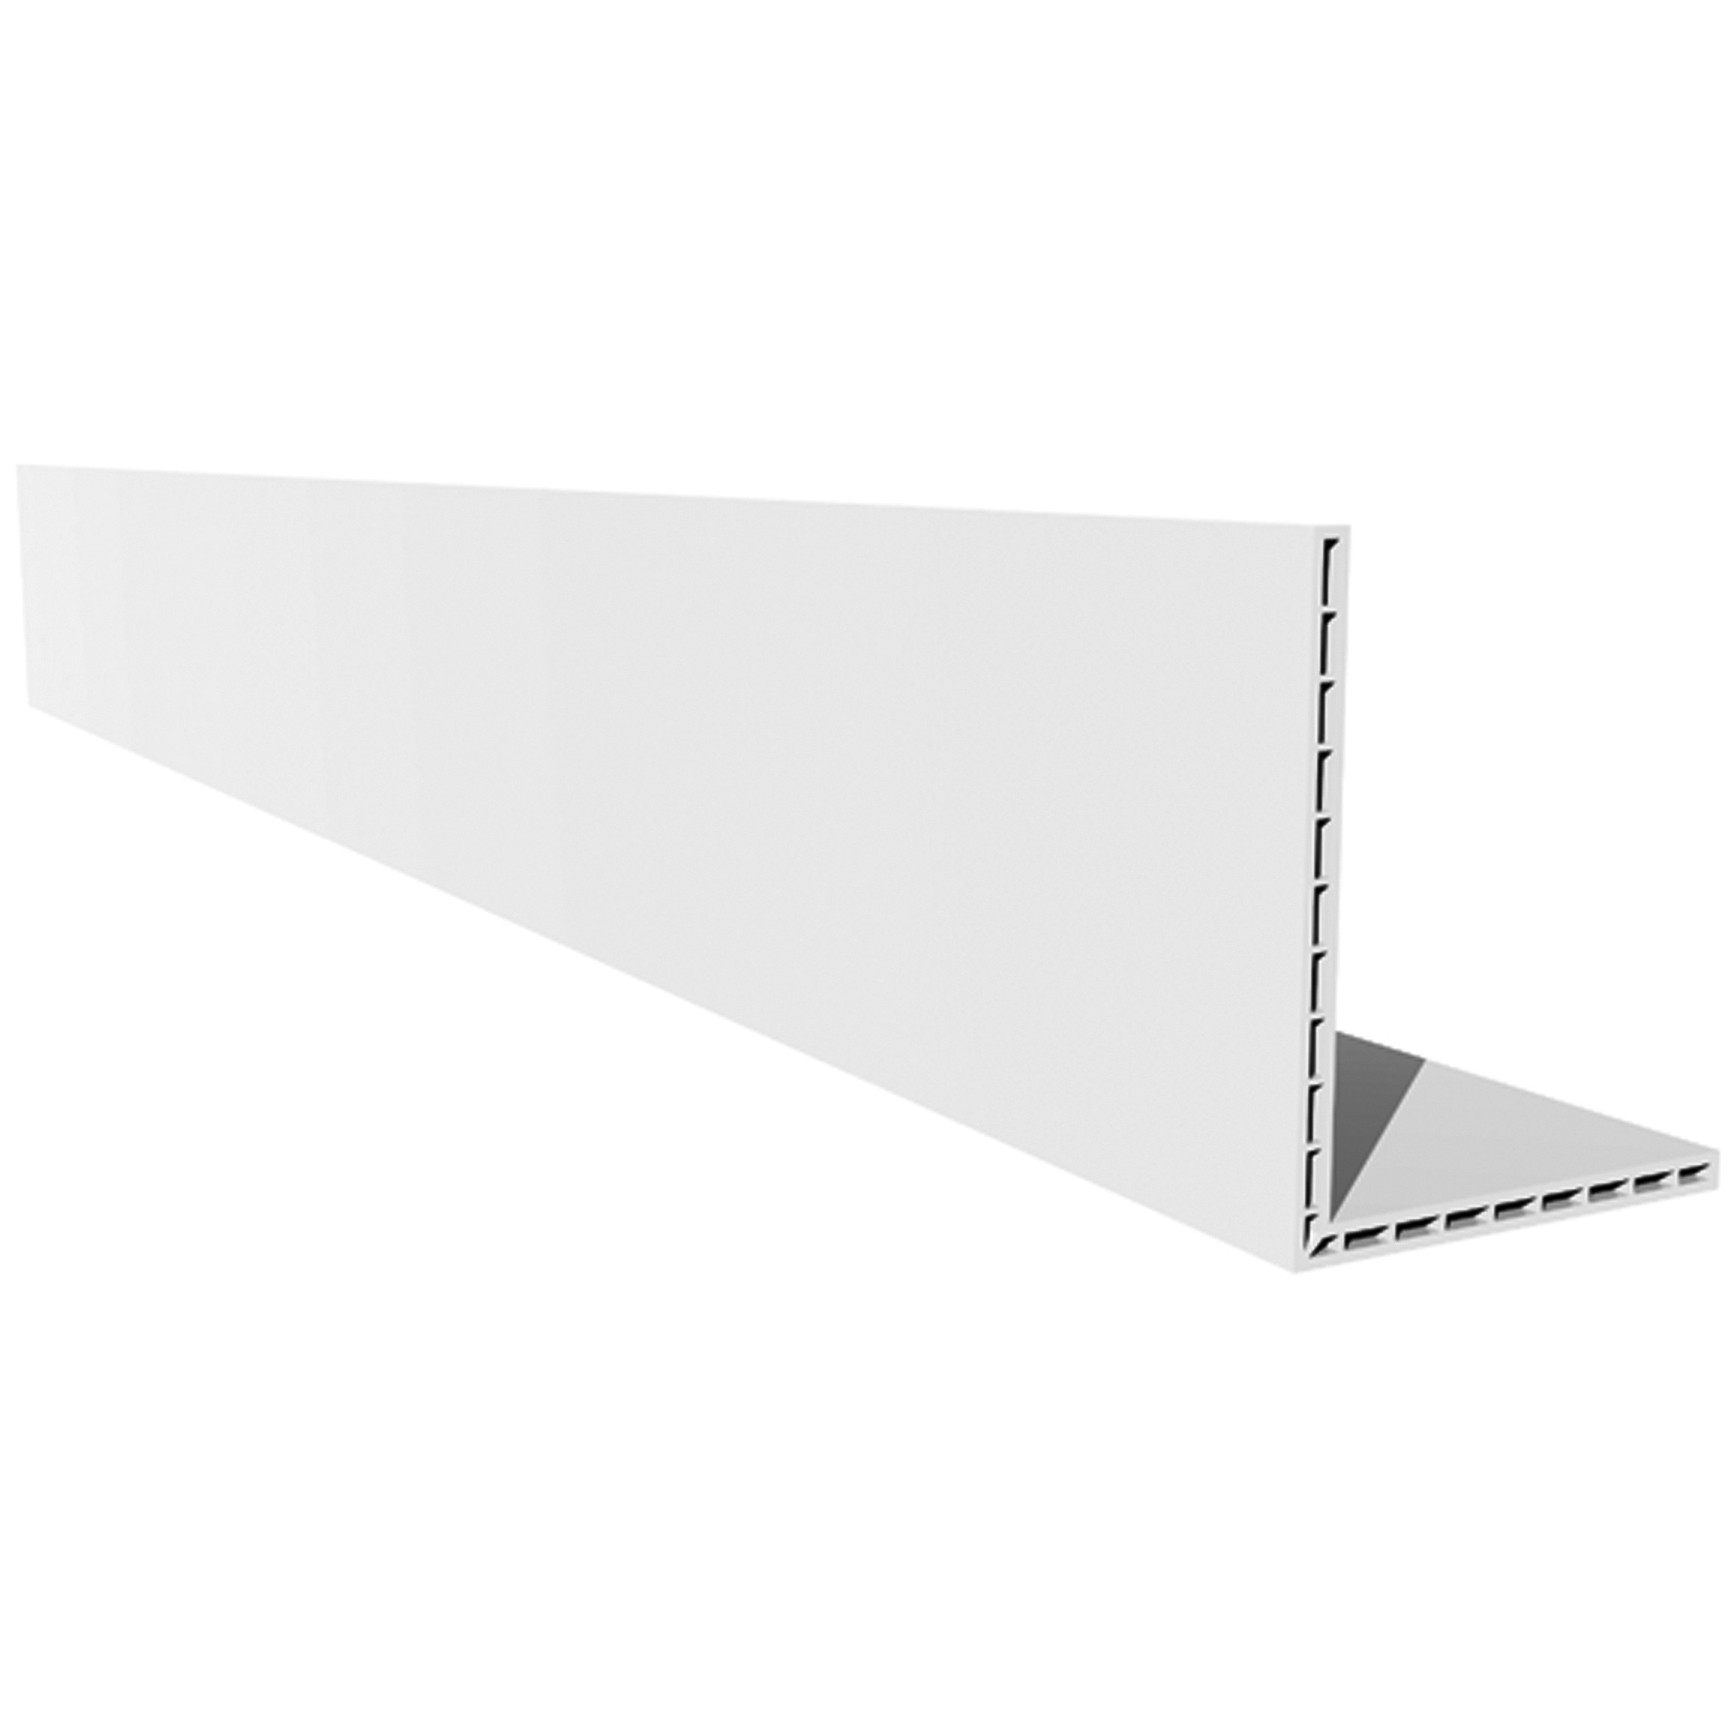 Freefoam Plastic Hollow Angle - White, 100mm x 80mm, 2.5 metre